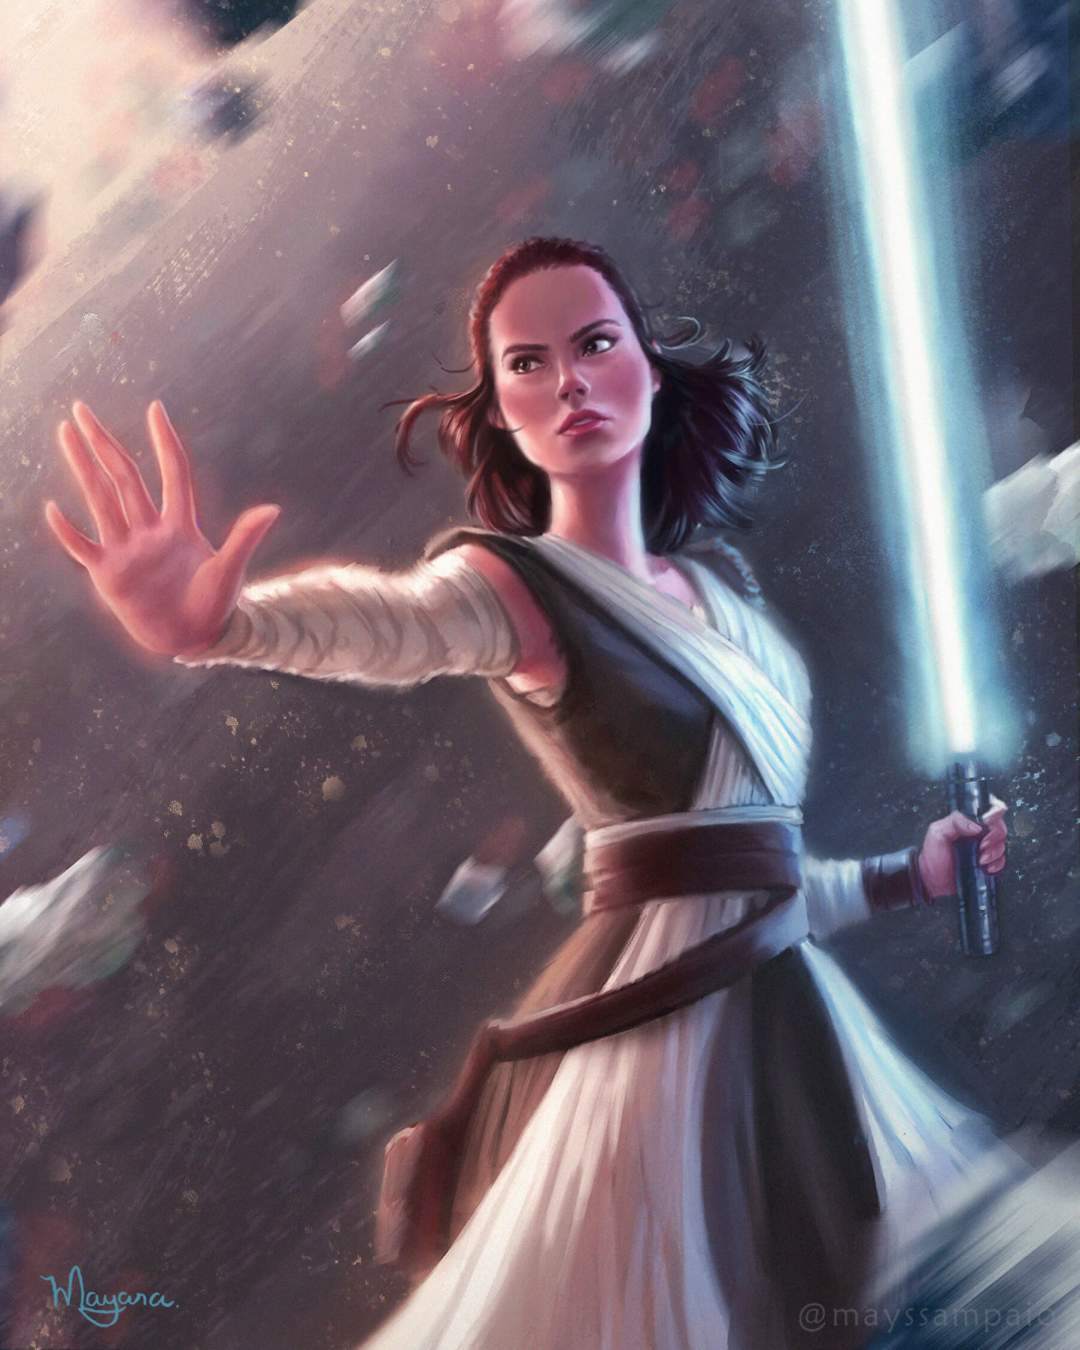 Rey by Mayara Sampaio